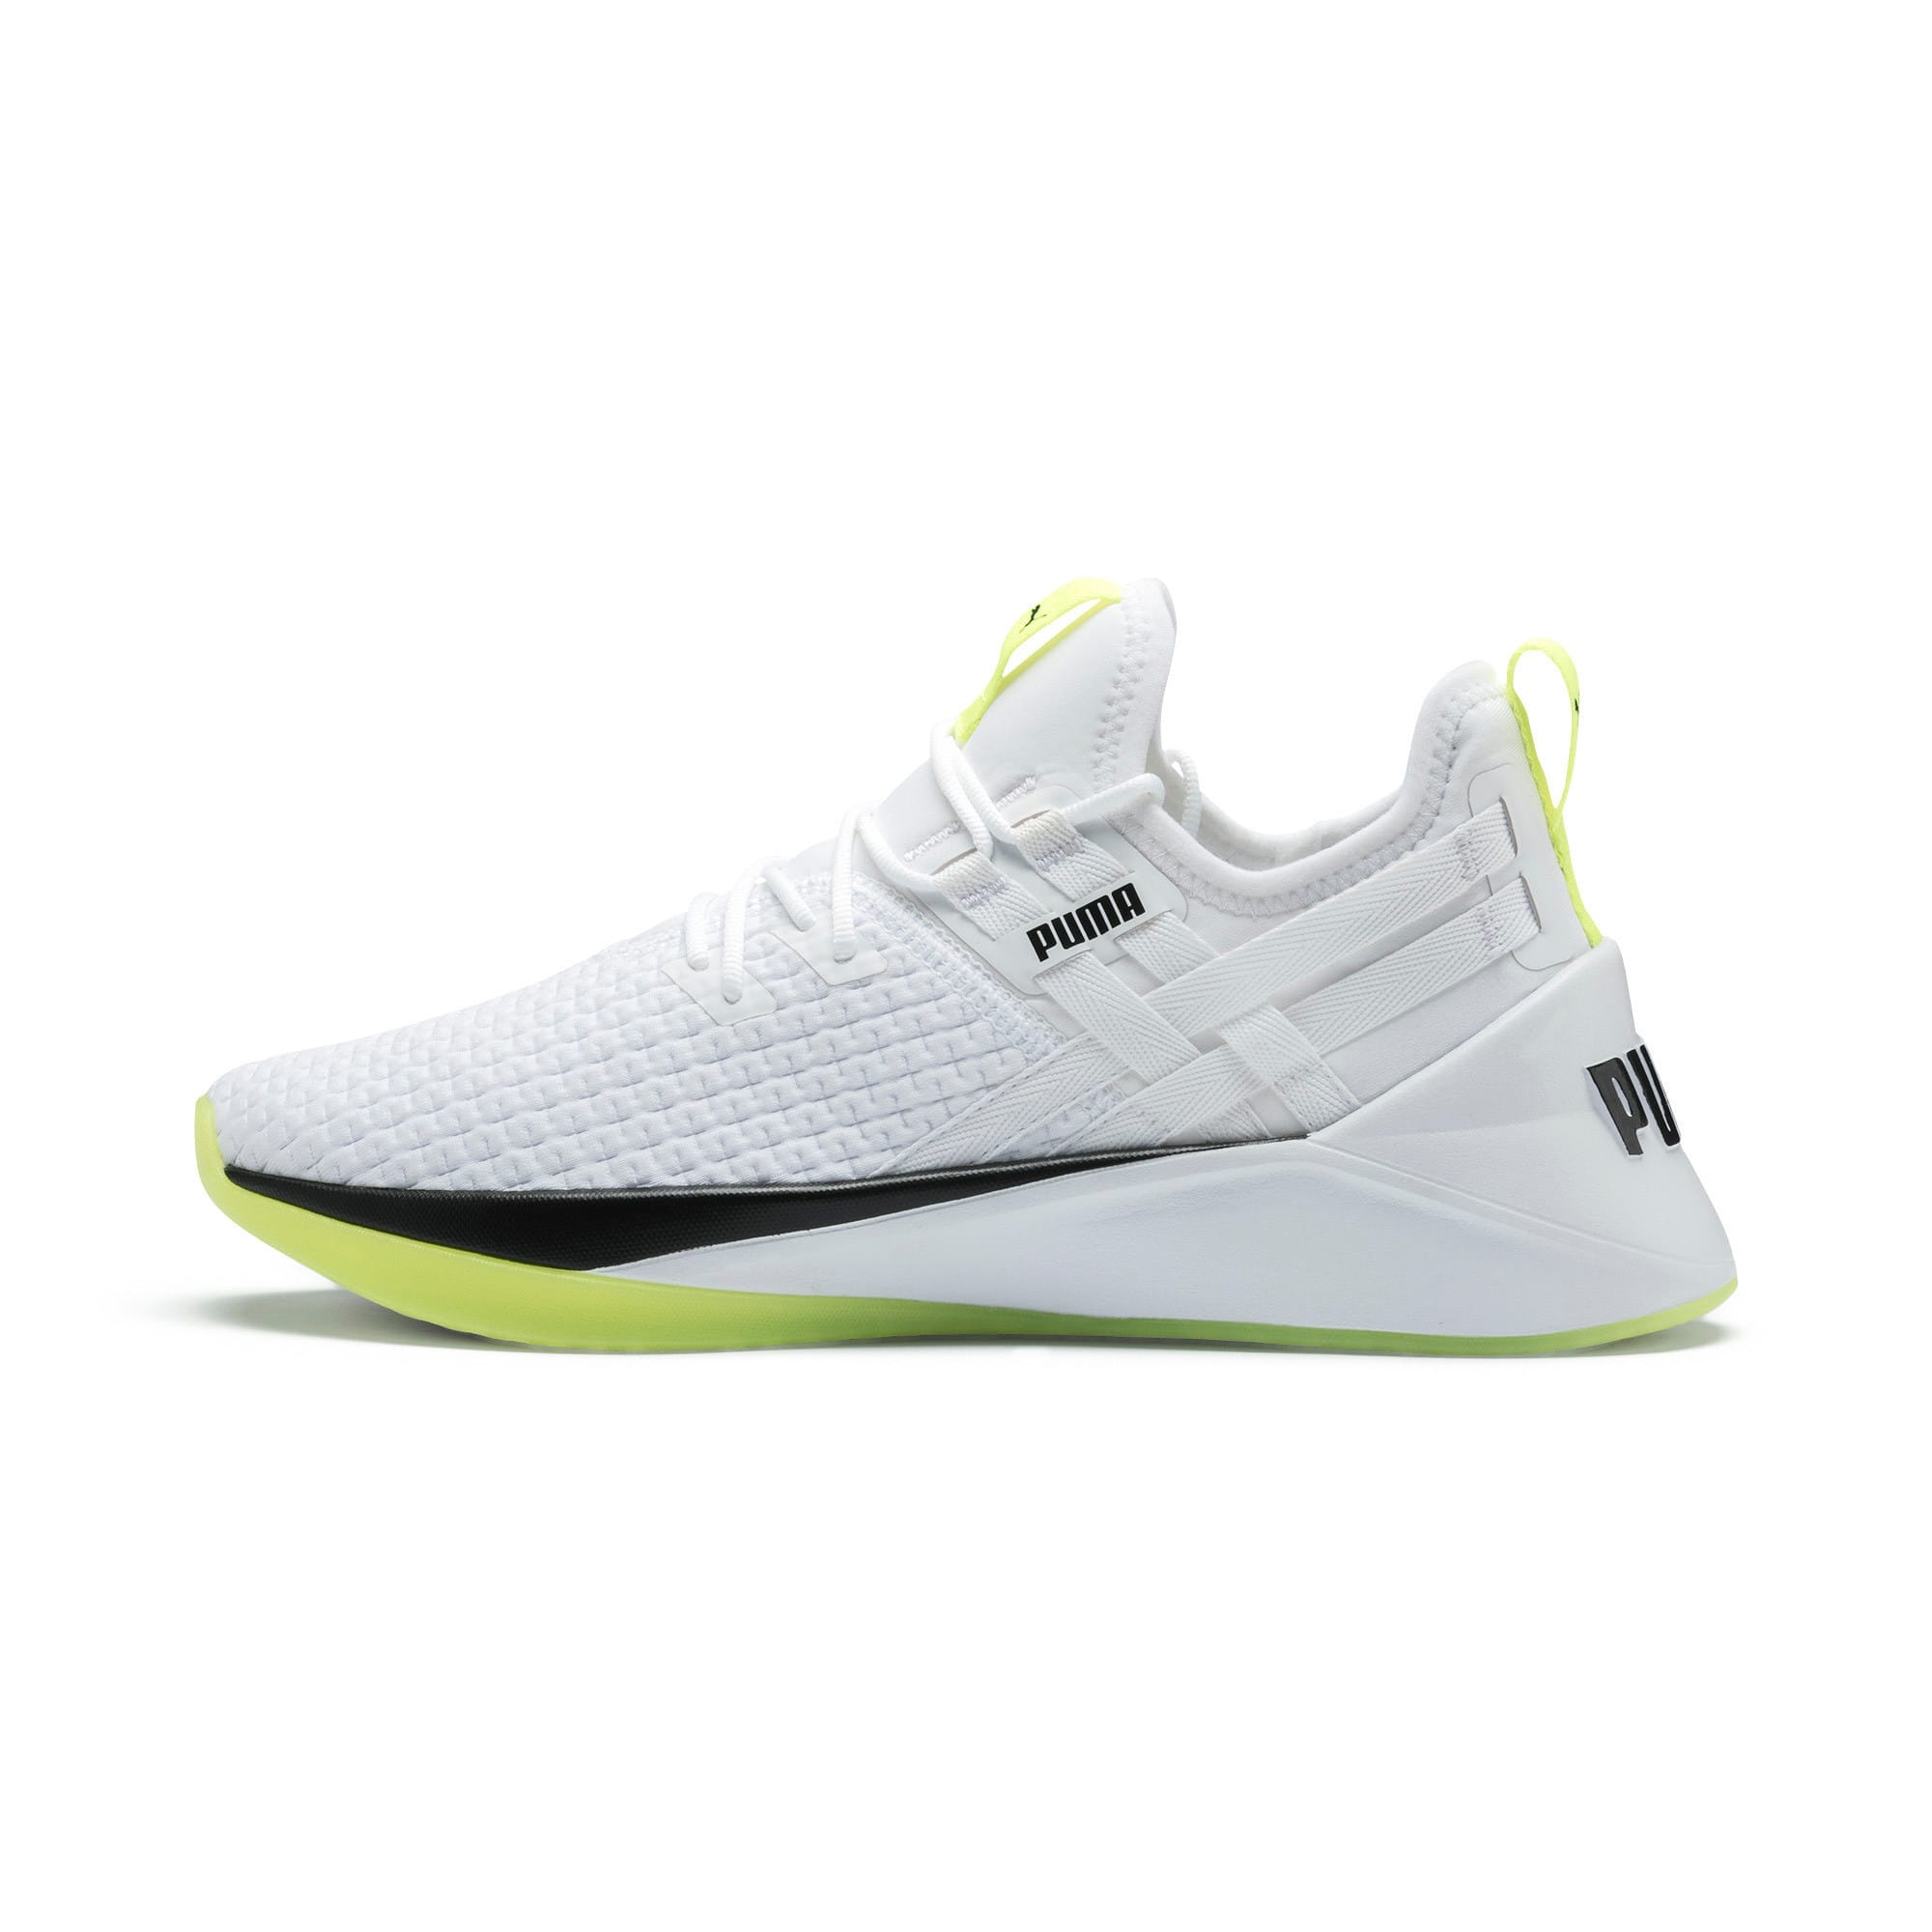 Thumbnail 1 of Jaab XT Damen Trainingsschuhe, Puma White-Yellow Alert, medium